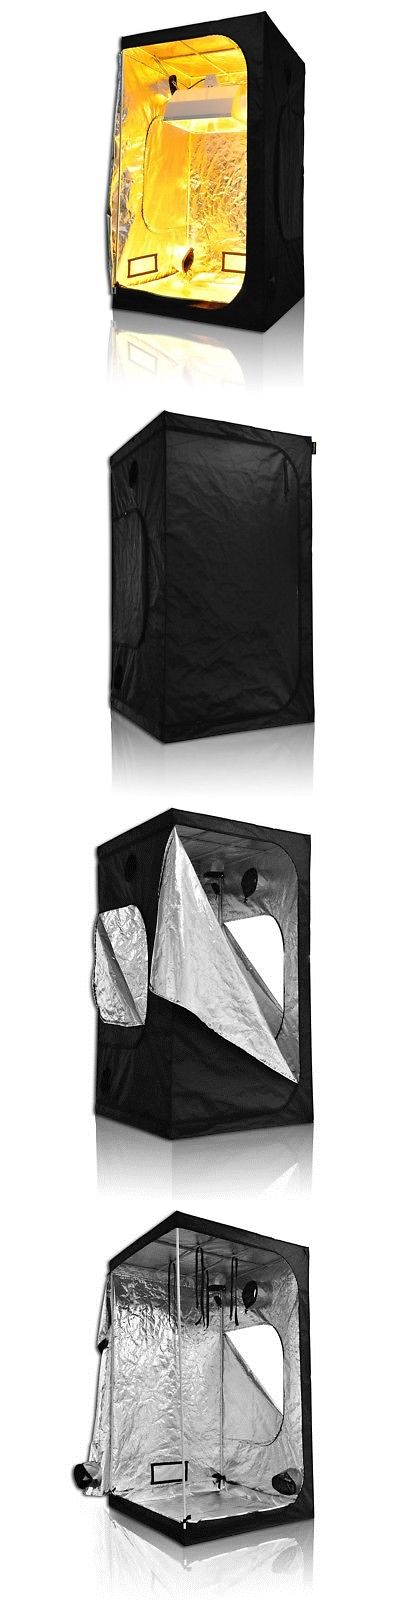 Tents Tarps and Shelves 178993 48X48x84 100% Reflective Mylar Hydroponics Grow Tent Non Toxic  sc 1 st  Pinterest & Tents Tarps and Shelves 178993: 48X48x84 100% Reflective Mylar ...